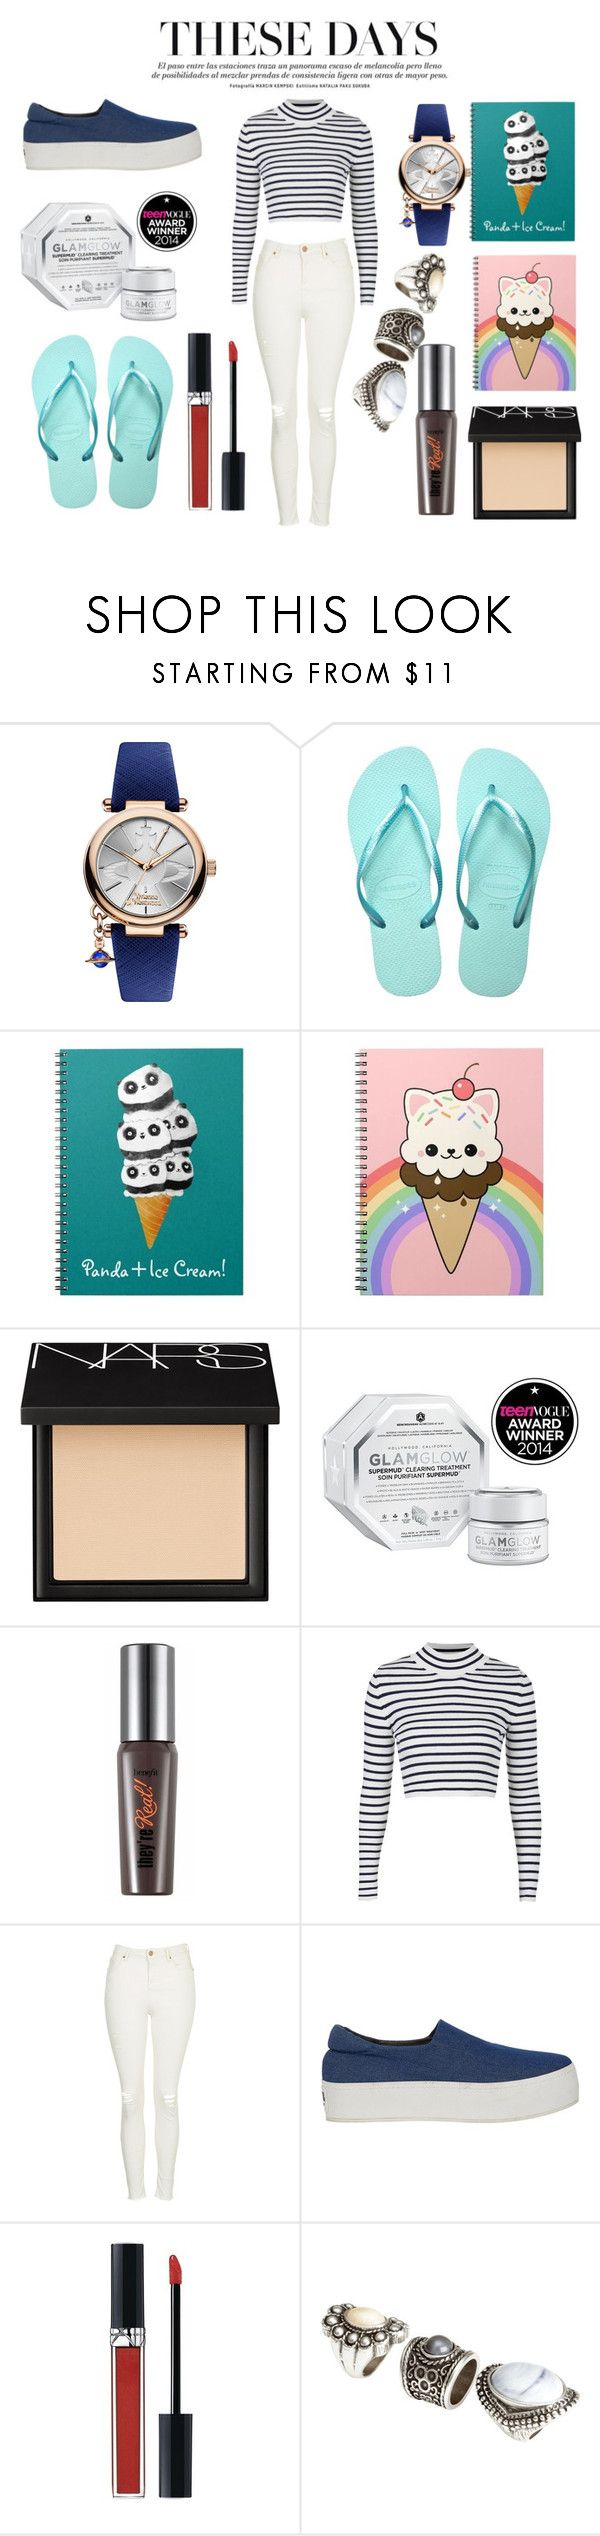 """""""Easter Finals Week"""" by young-booty on Polyvore featuring Vivienne Westwood, Havaianas, NARS Cosmetics, GlamGlow, Benefit, Topshop, Opening Ceremony, Christian Dior and H&M"""